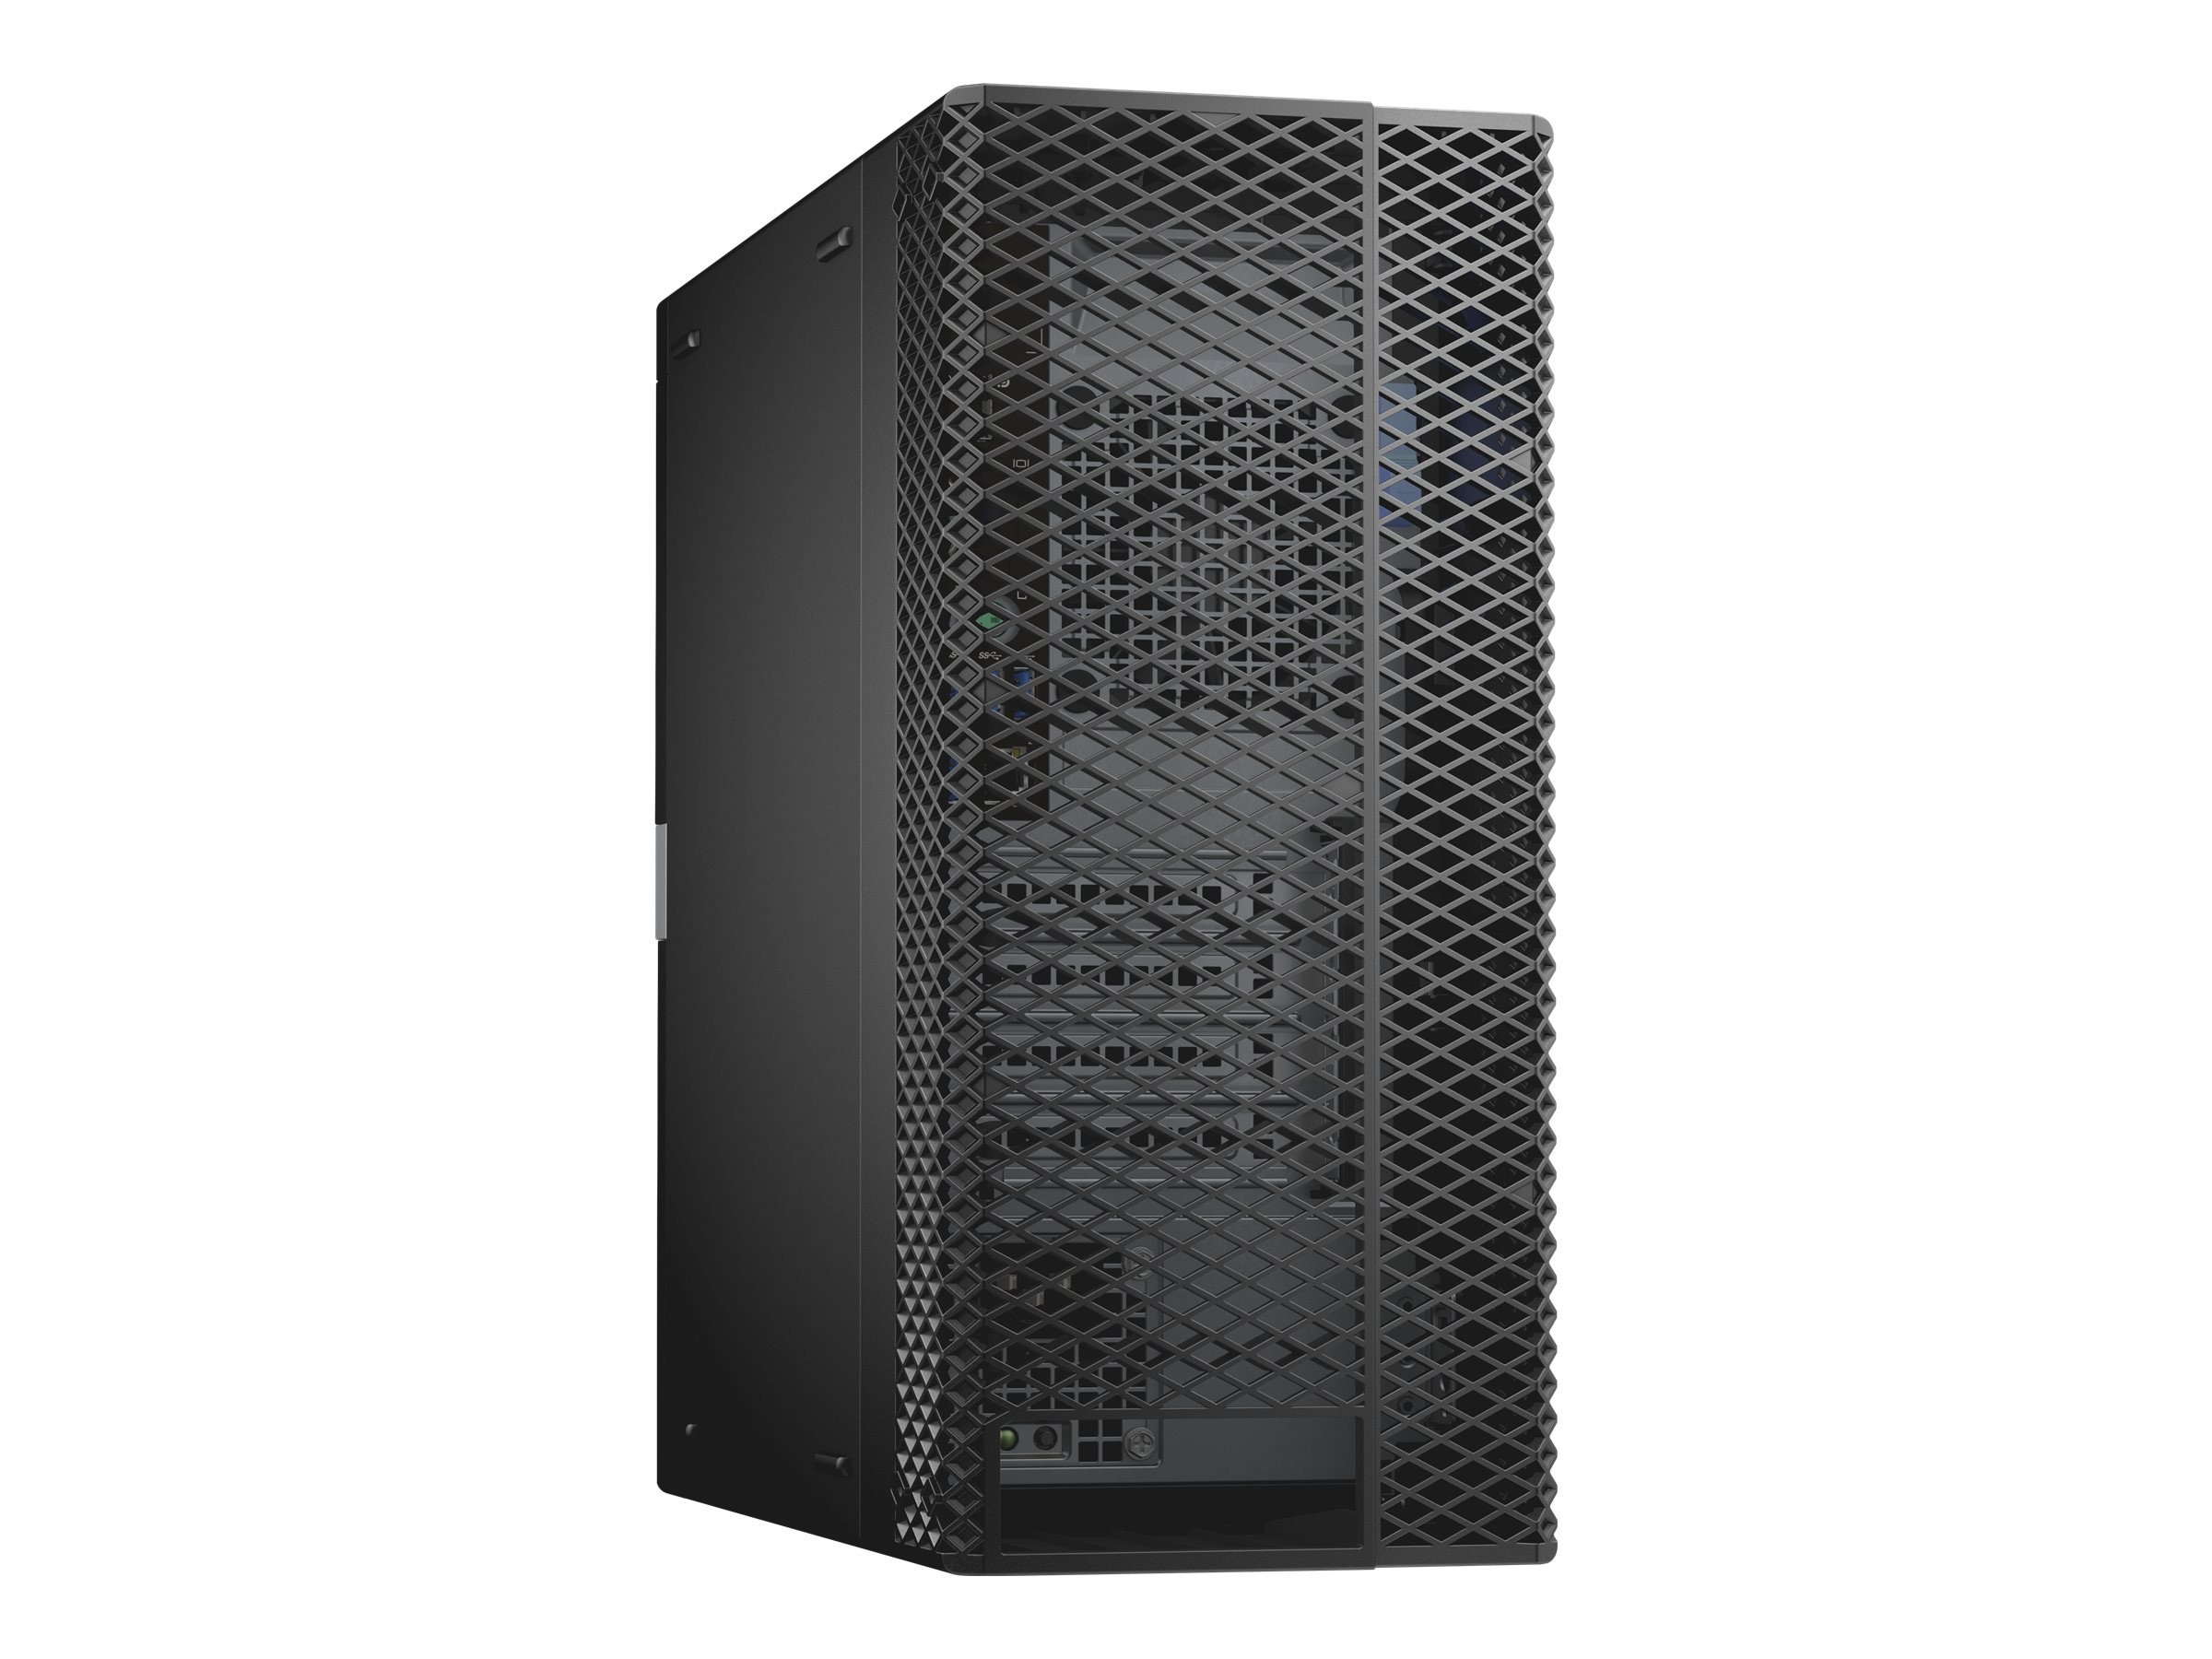 Dell OptiPlex 7040 3.4GHz Core i7 8GB RAM 500GB hard drive, CMR0C